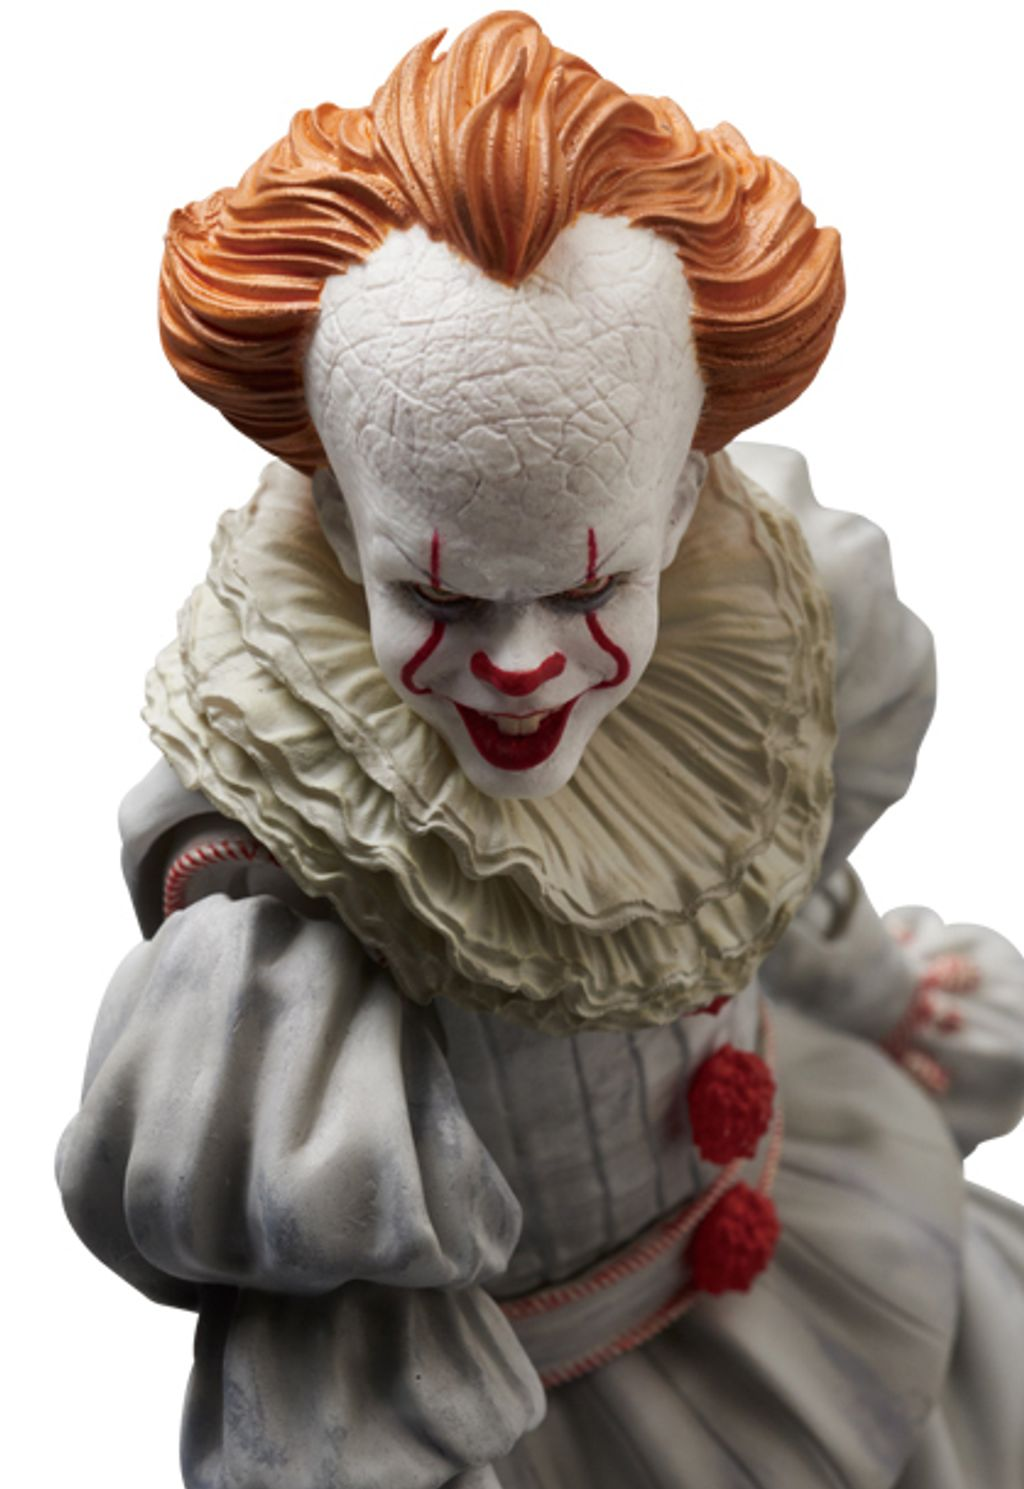 [093]Pennywise_IT2017 010.jpg